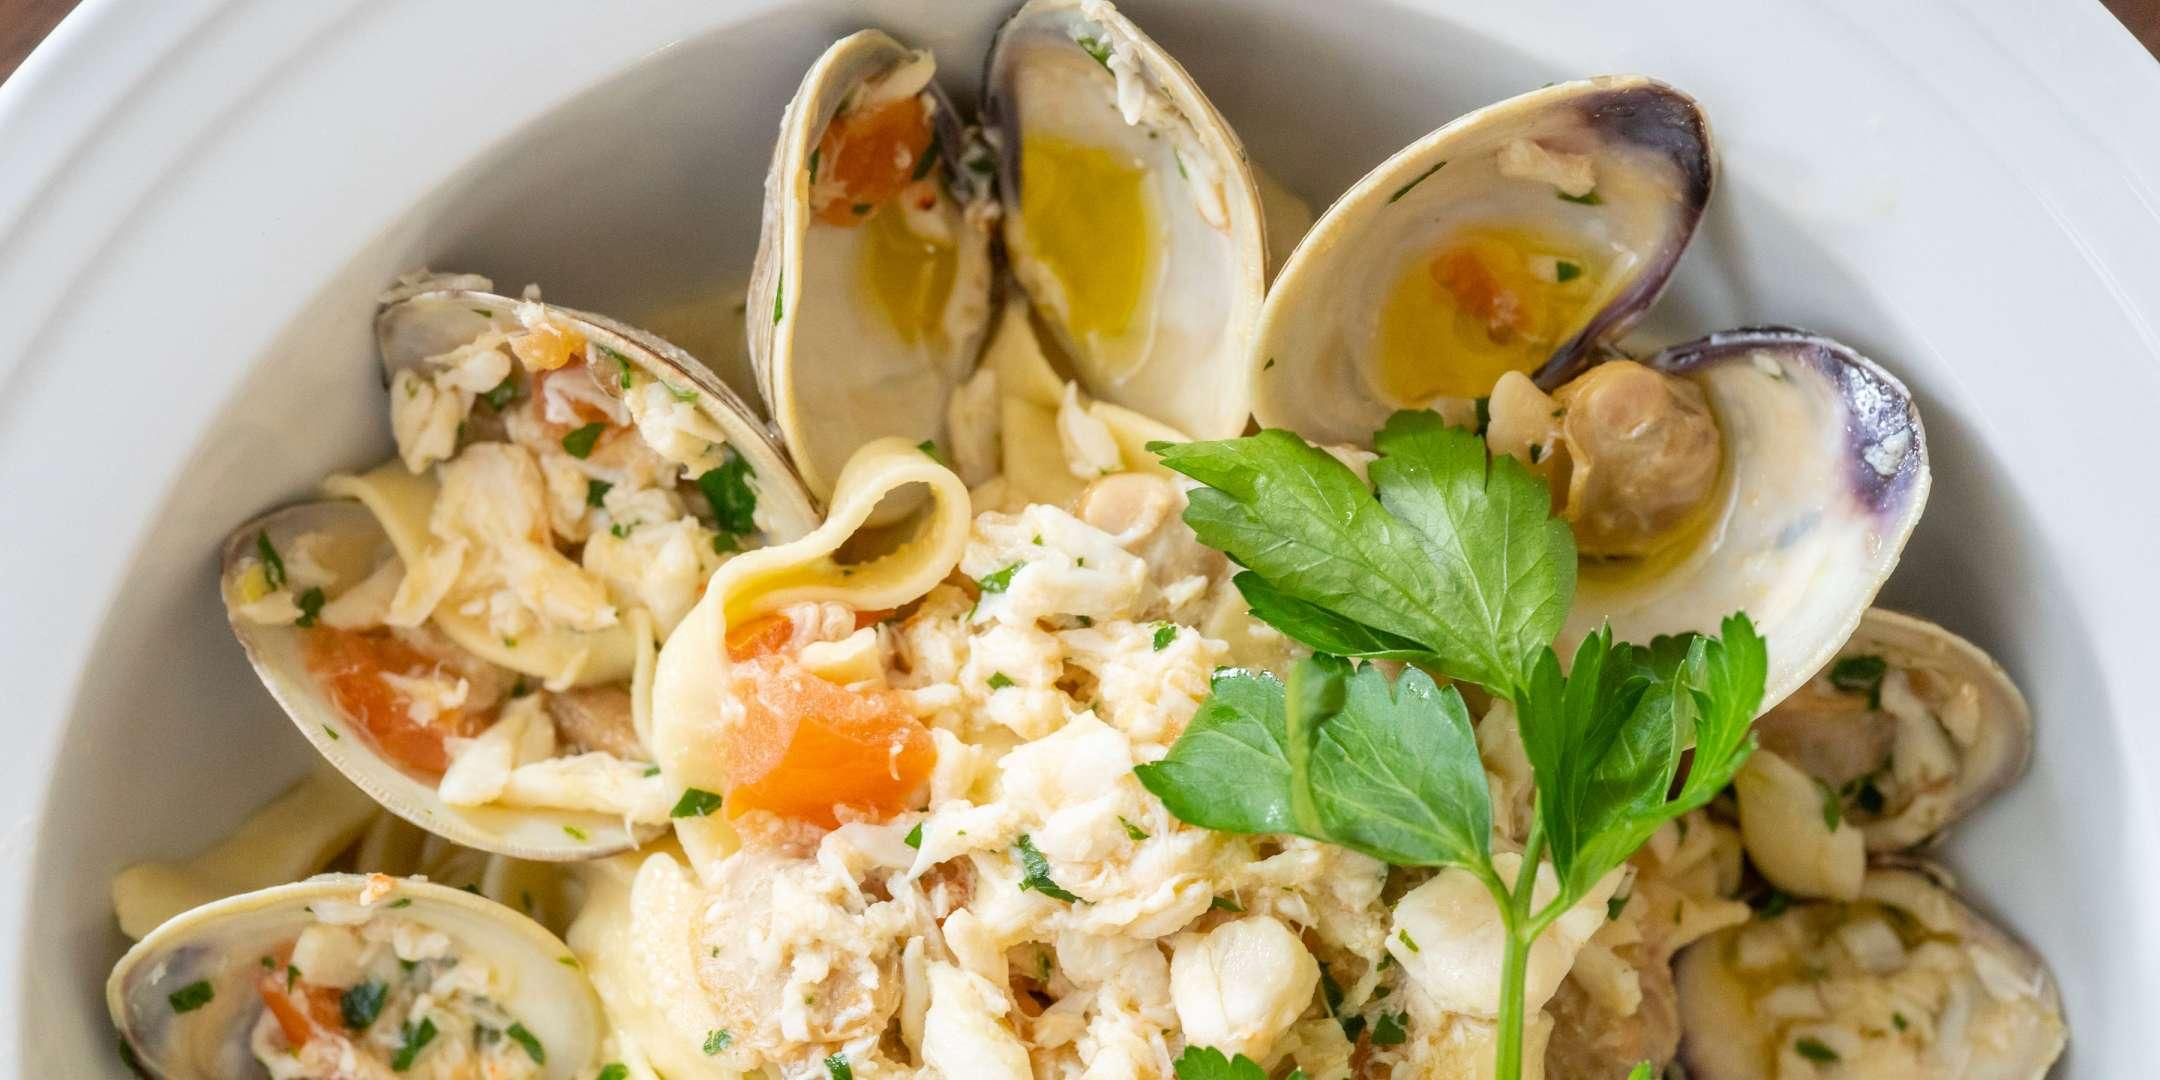 Italian Seafood Fare - Cooking Class by Cozymeal™